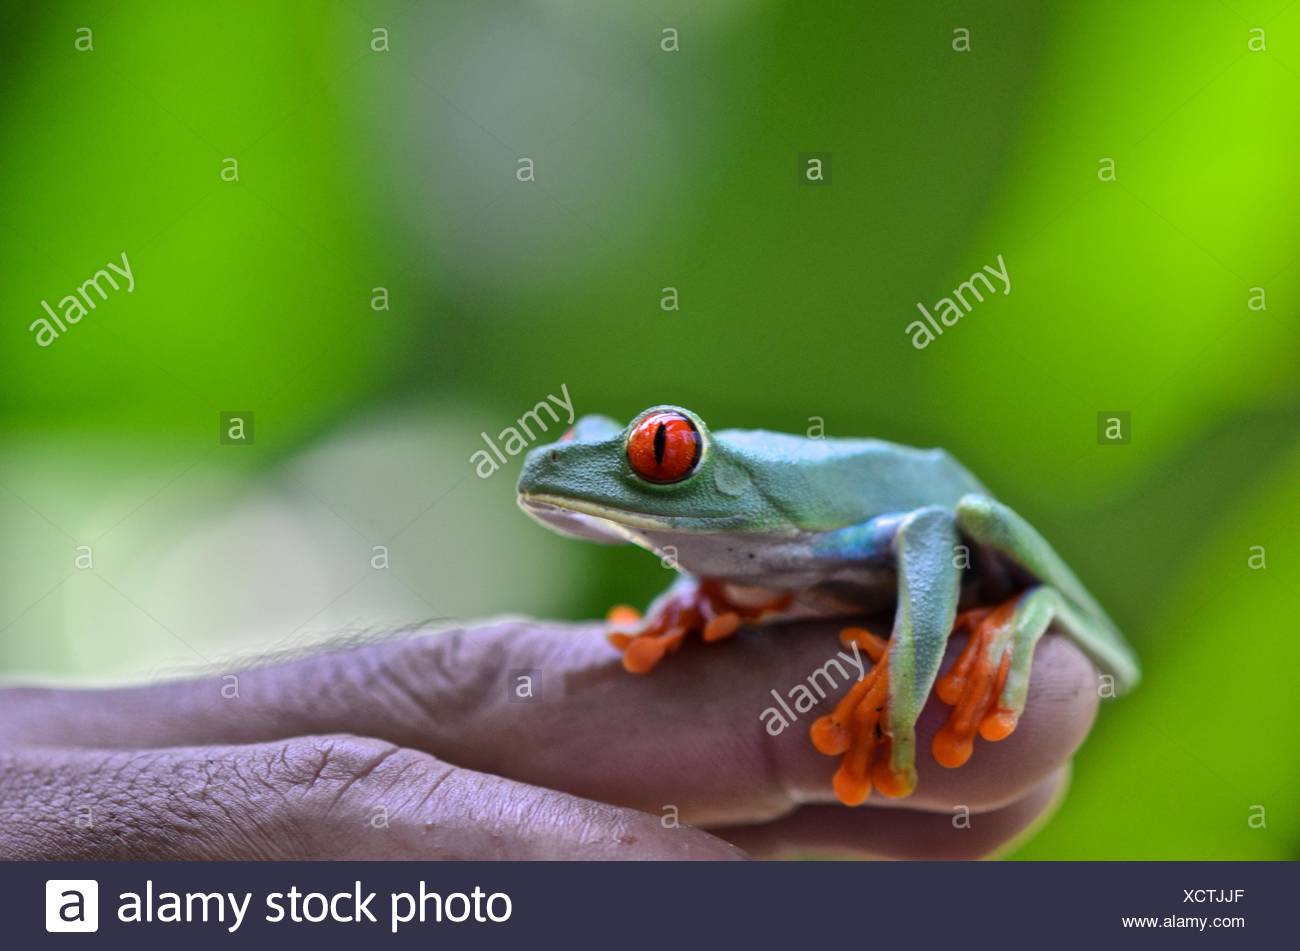 A red eyed tree frog, Agalychnis callidryas, rests on a person's hand at Tortuguero National Park. - Stock Image